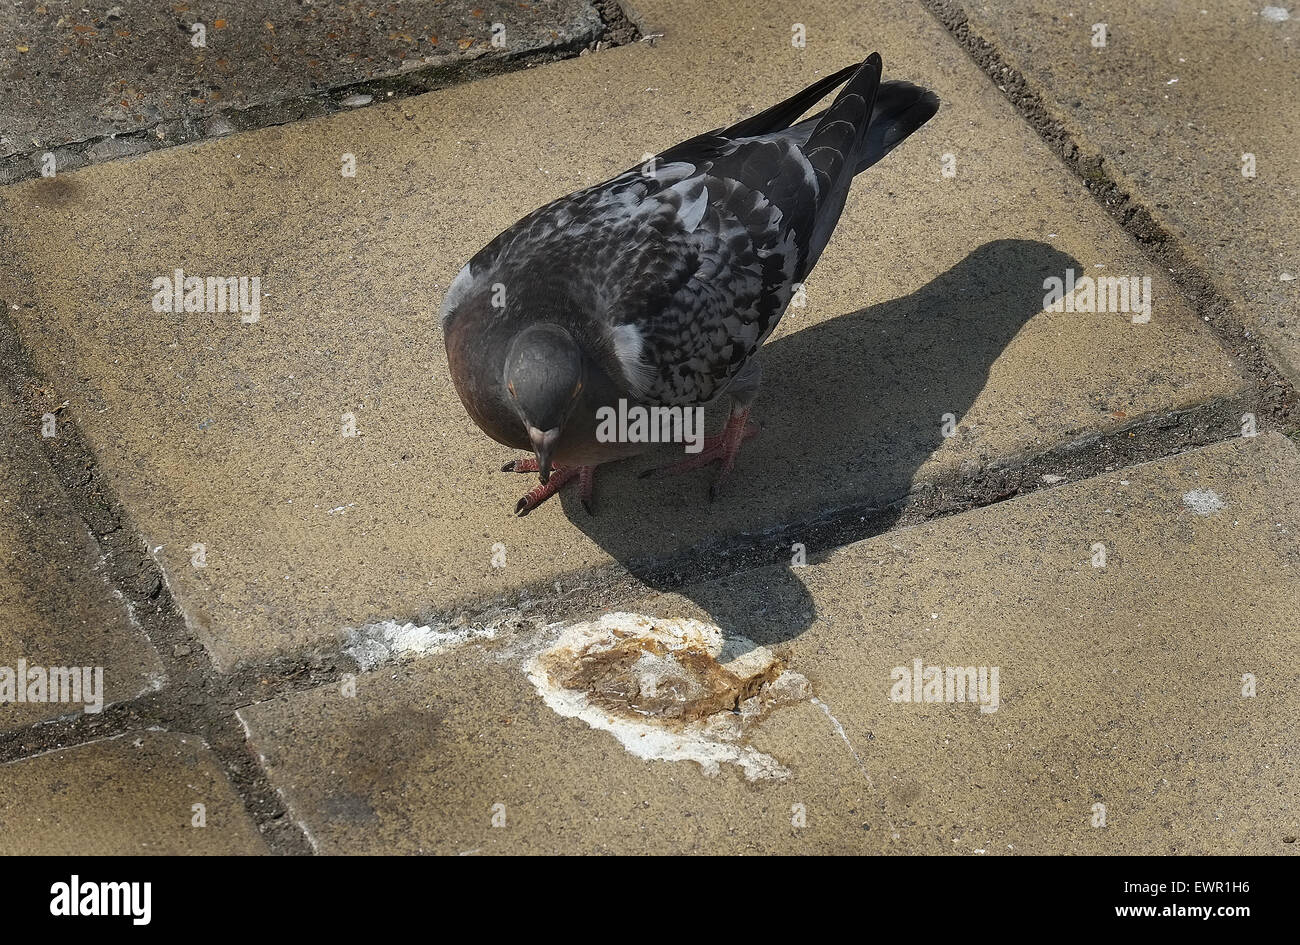 Feral pigeon in town with bird droppings. - Stock Image